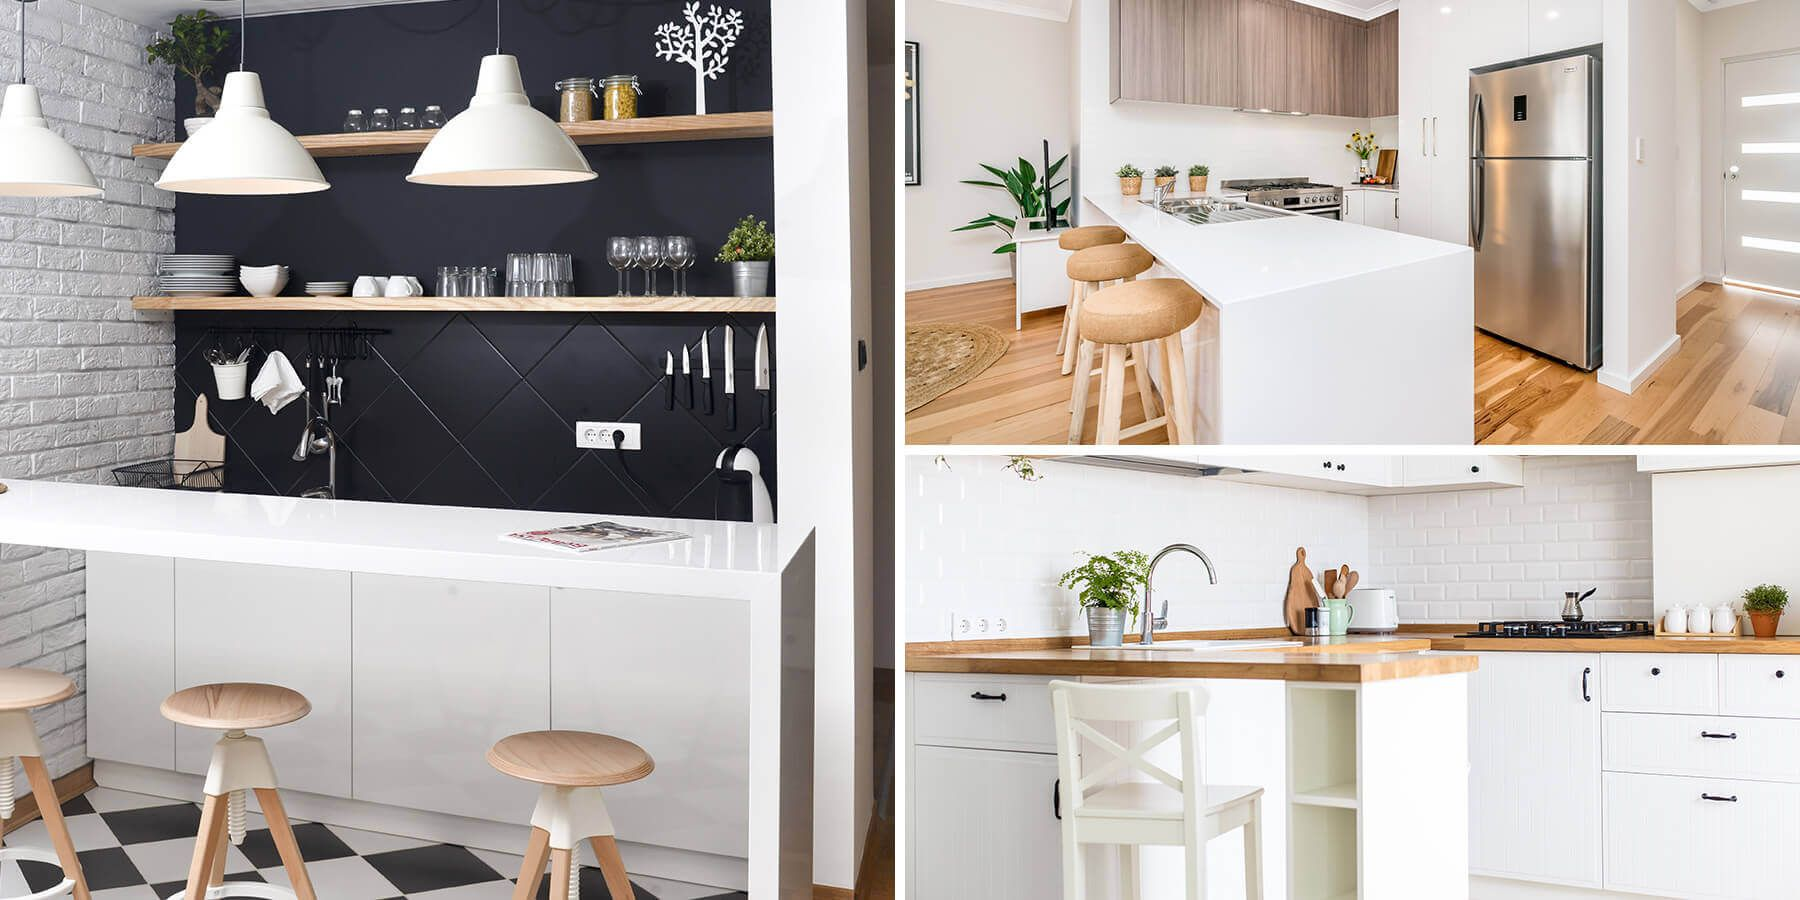 small kitchen bars are the perfect addition for extra